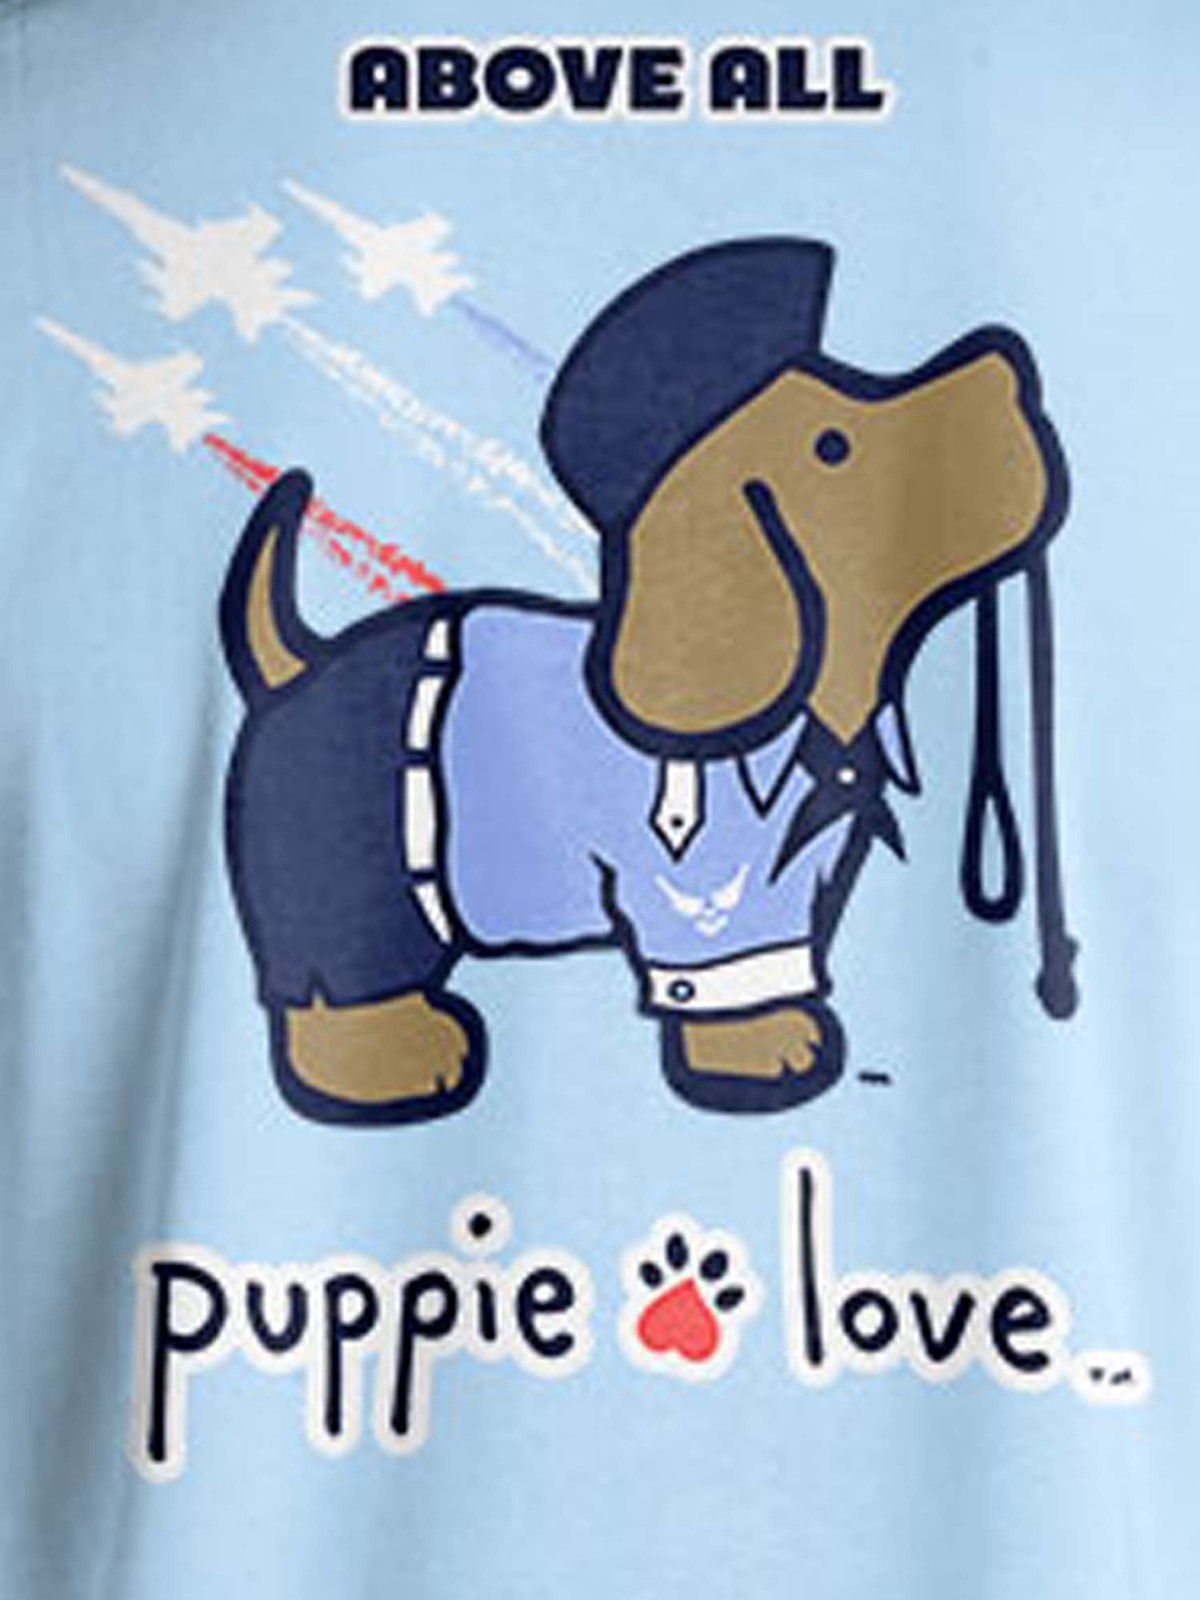 Puppie Love Rescue Dog Adult Unisex Short Sleeve Graphic T-Shirt, Air Force Pup